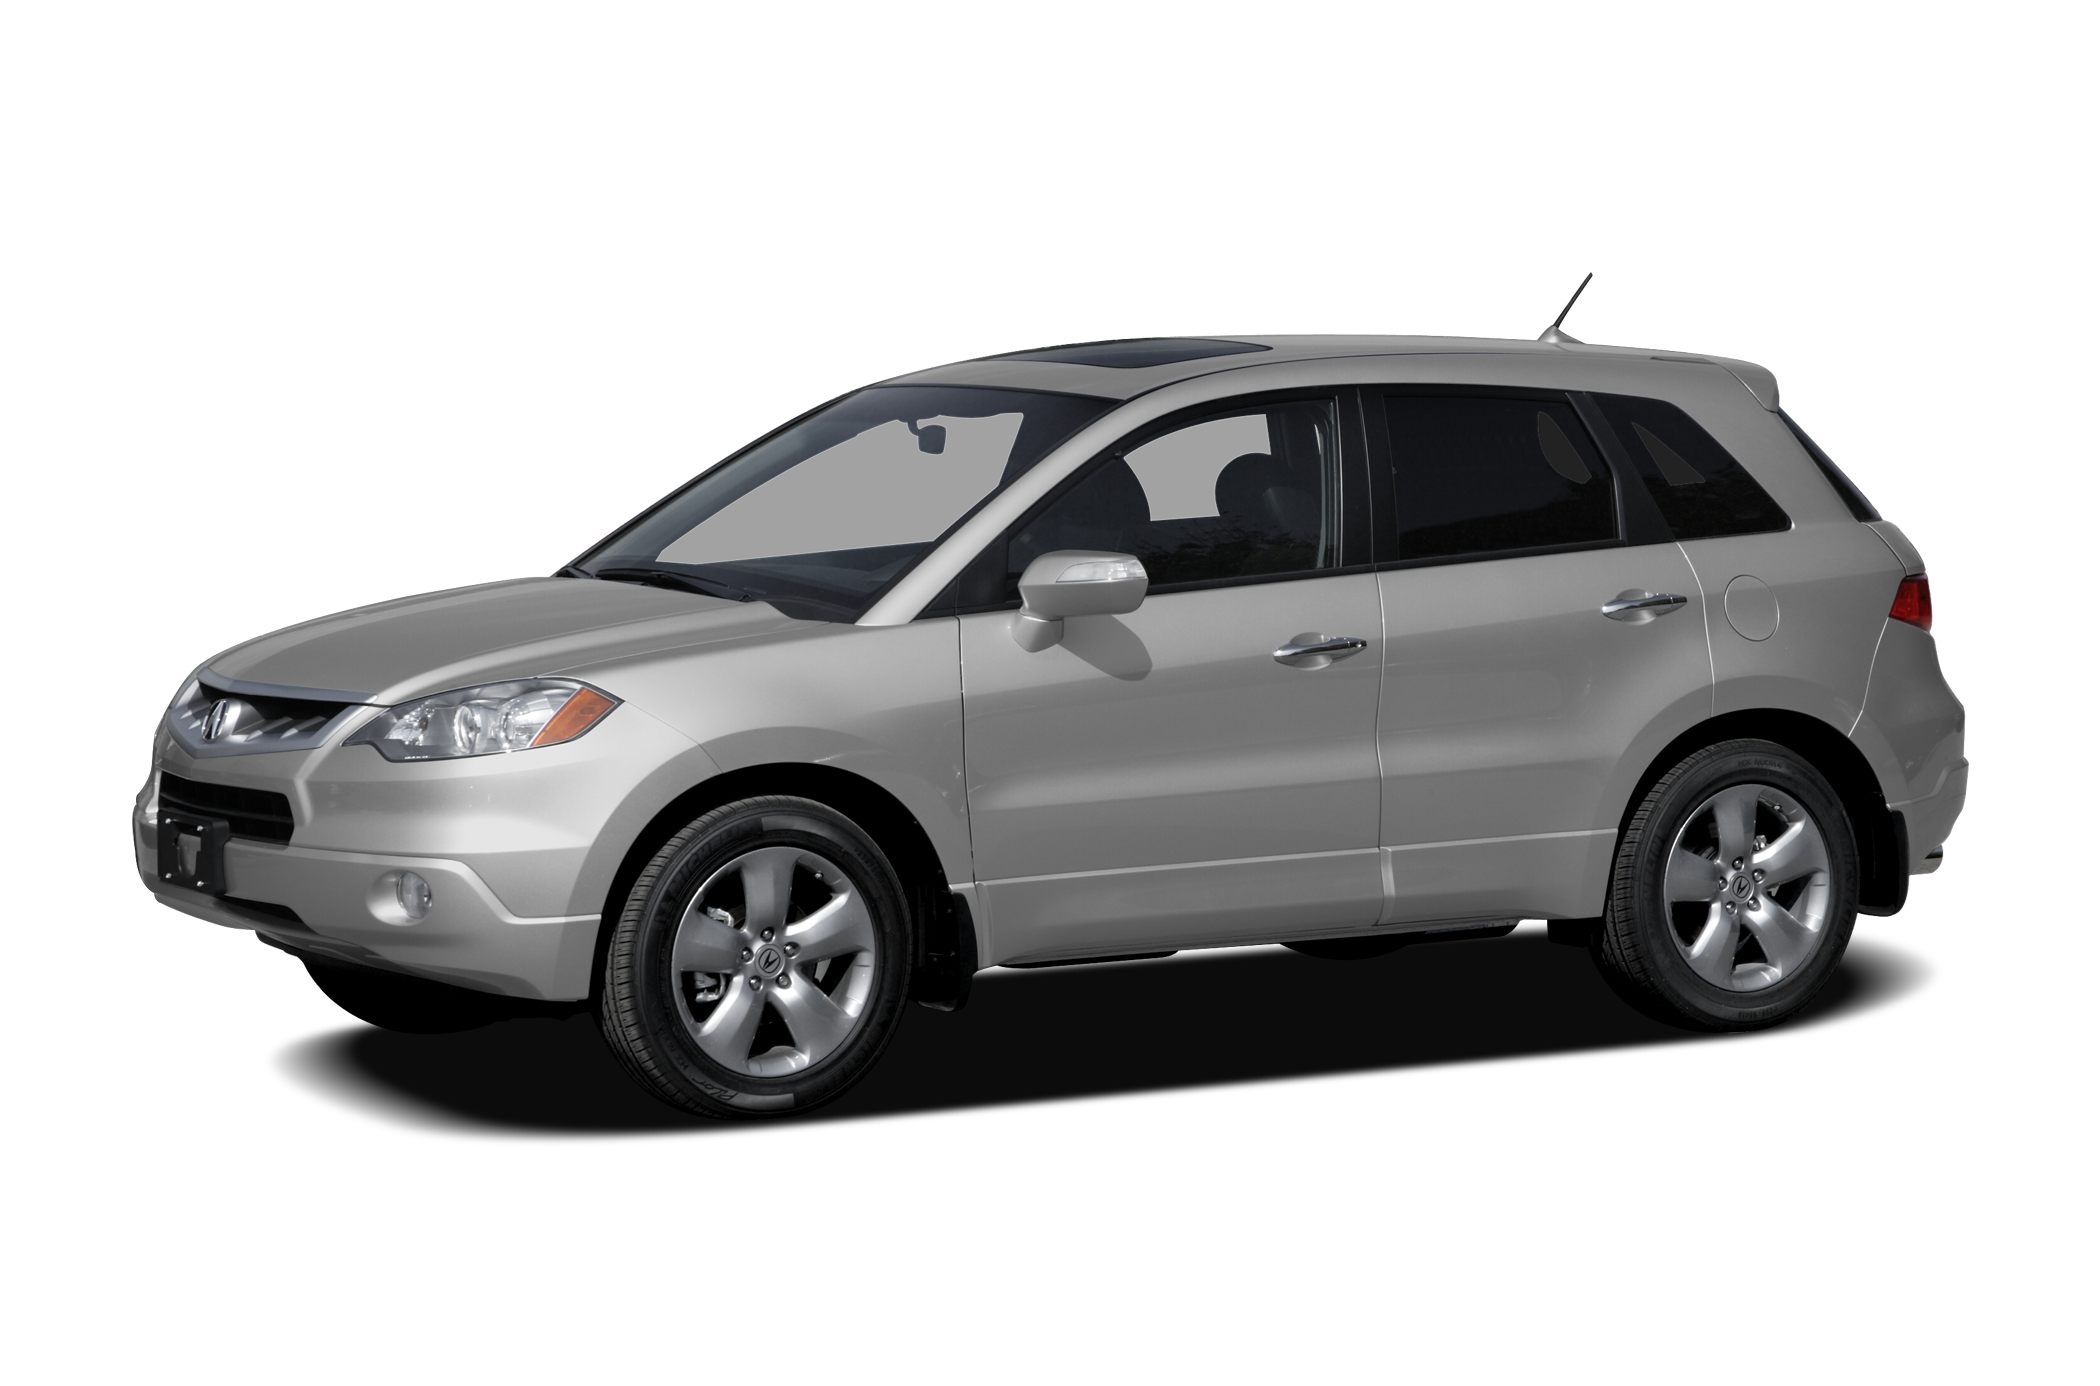 2008 Acura RDX Technology WE SELL OUR VEHICLES AT WHOLESALE PRICES AND STAND BEHIND OUR CARS